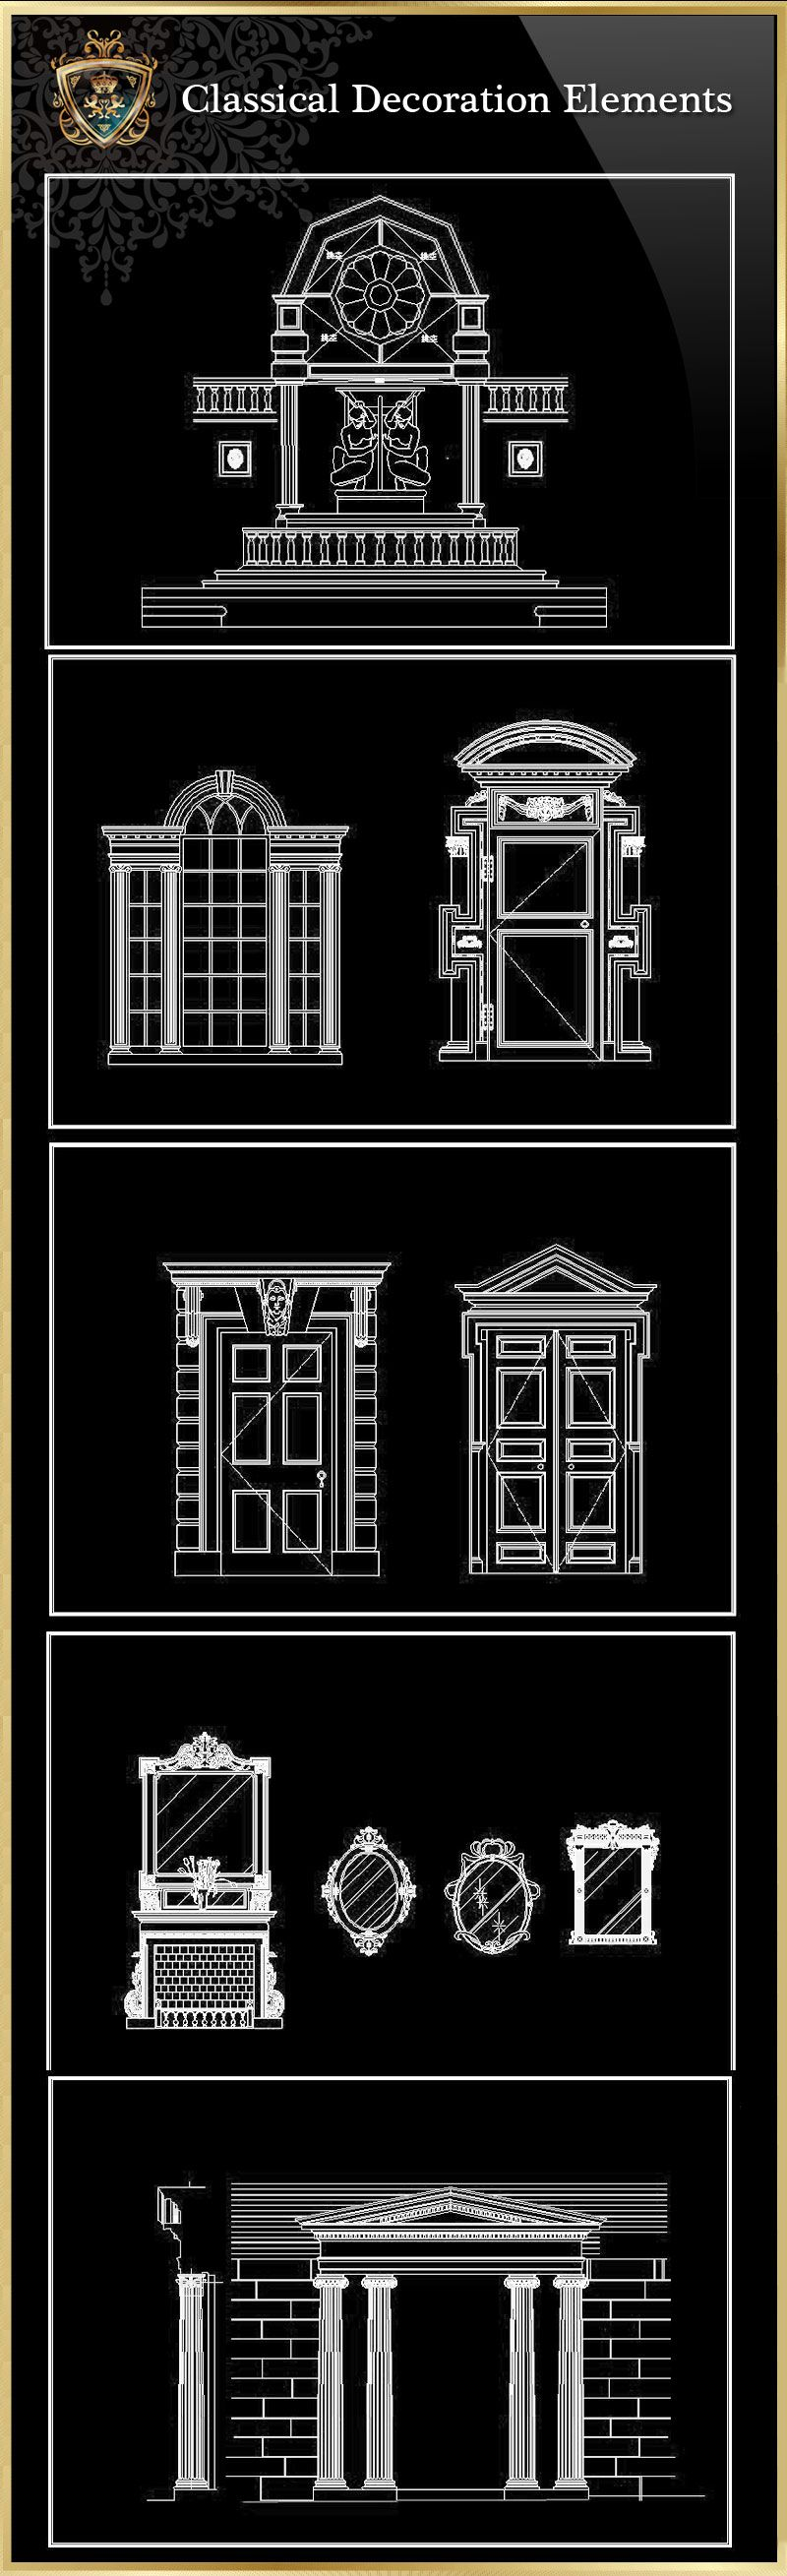 ☆【Classical Decoration Elements 03】Download Luxury Architectural Design CAD  Drawings  Over 20000+ High Quality CAD Blocks And Drawings Download!